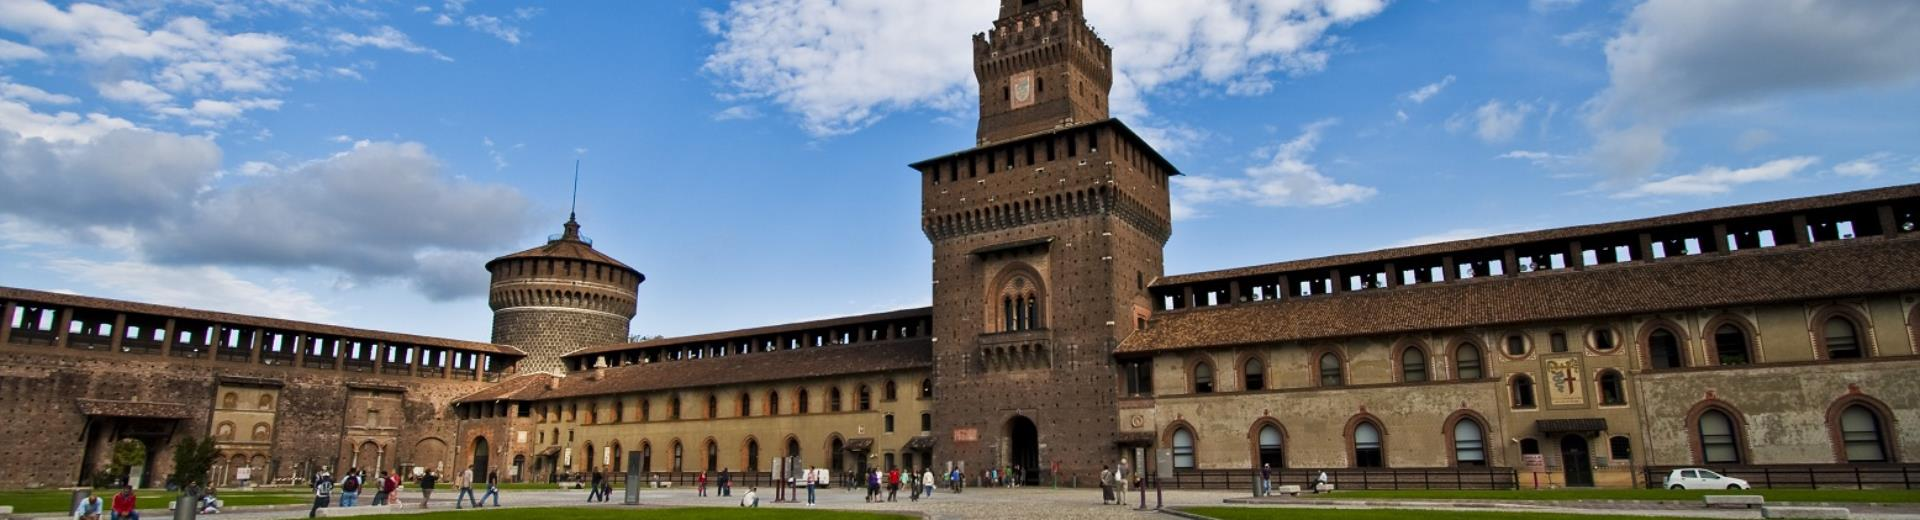 Discover Milan and its beauties: the Castello Sforzesco easy to reach from Hotel Astoria